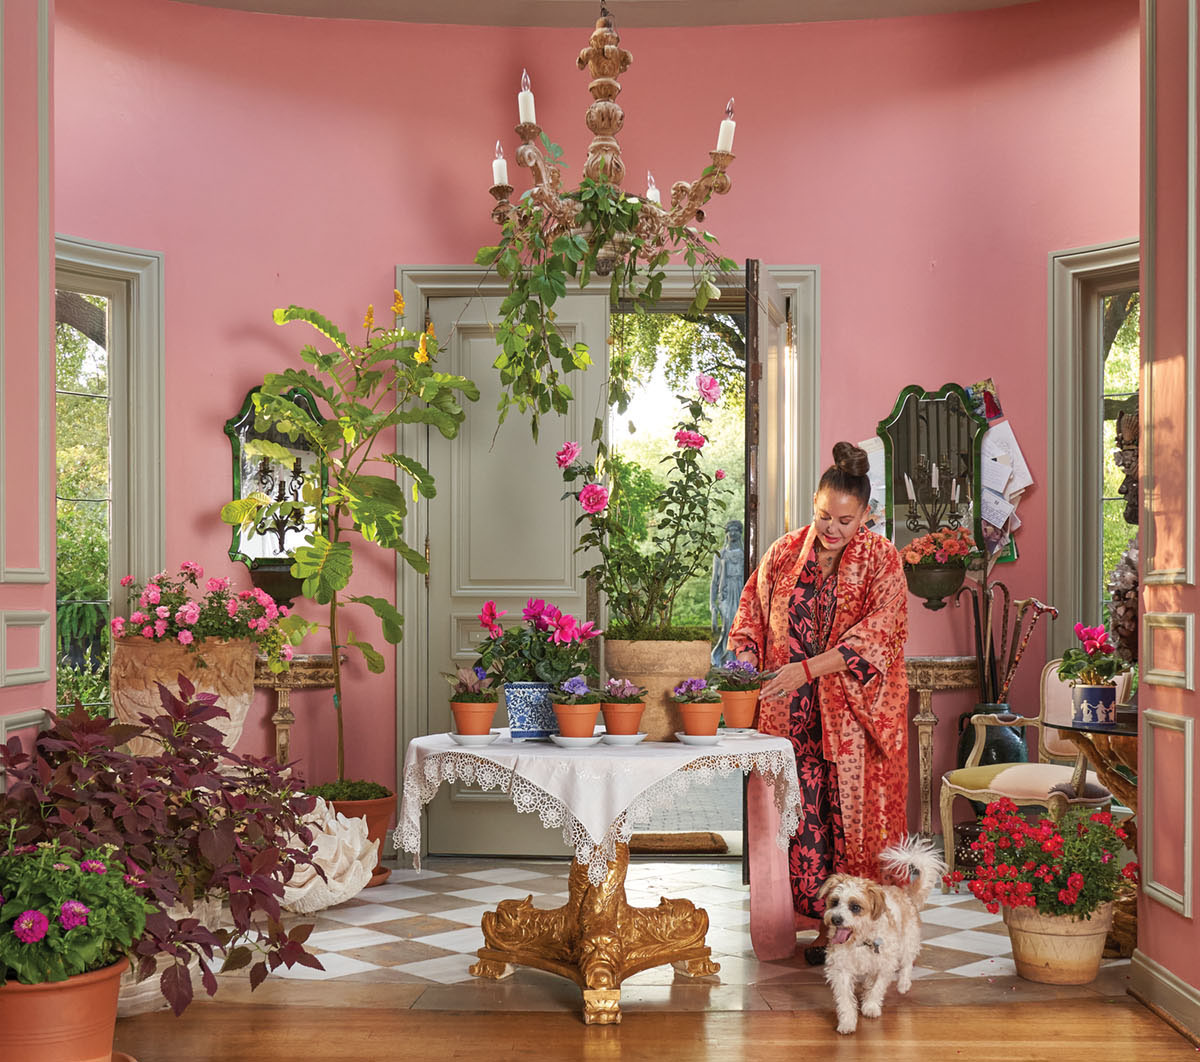 Wearing luxurious, brightly colored pajamas and robe, designer Michelle Nussbaumer stands in her entry hall, painted pink and filled with house plants. She tends to potted plants on her entry table. Her dog stands at her feet.